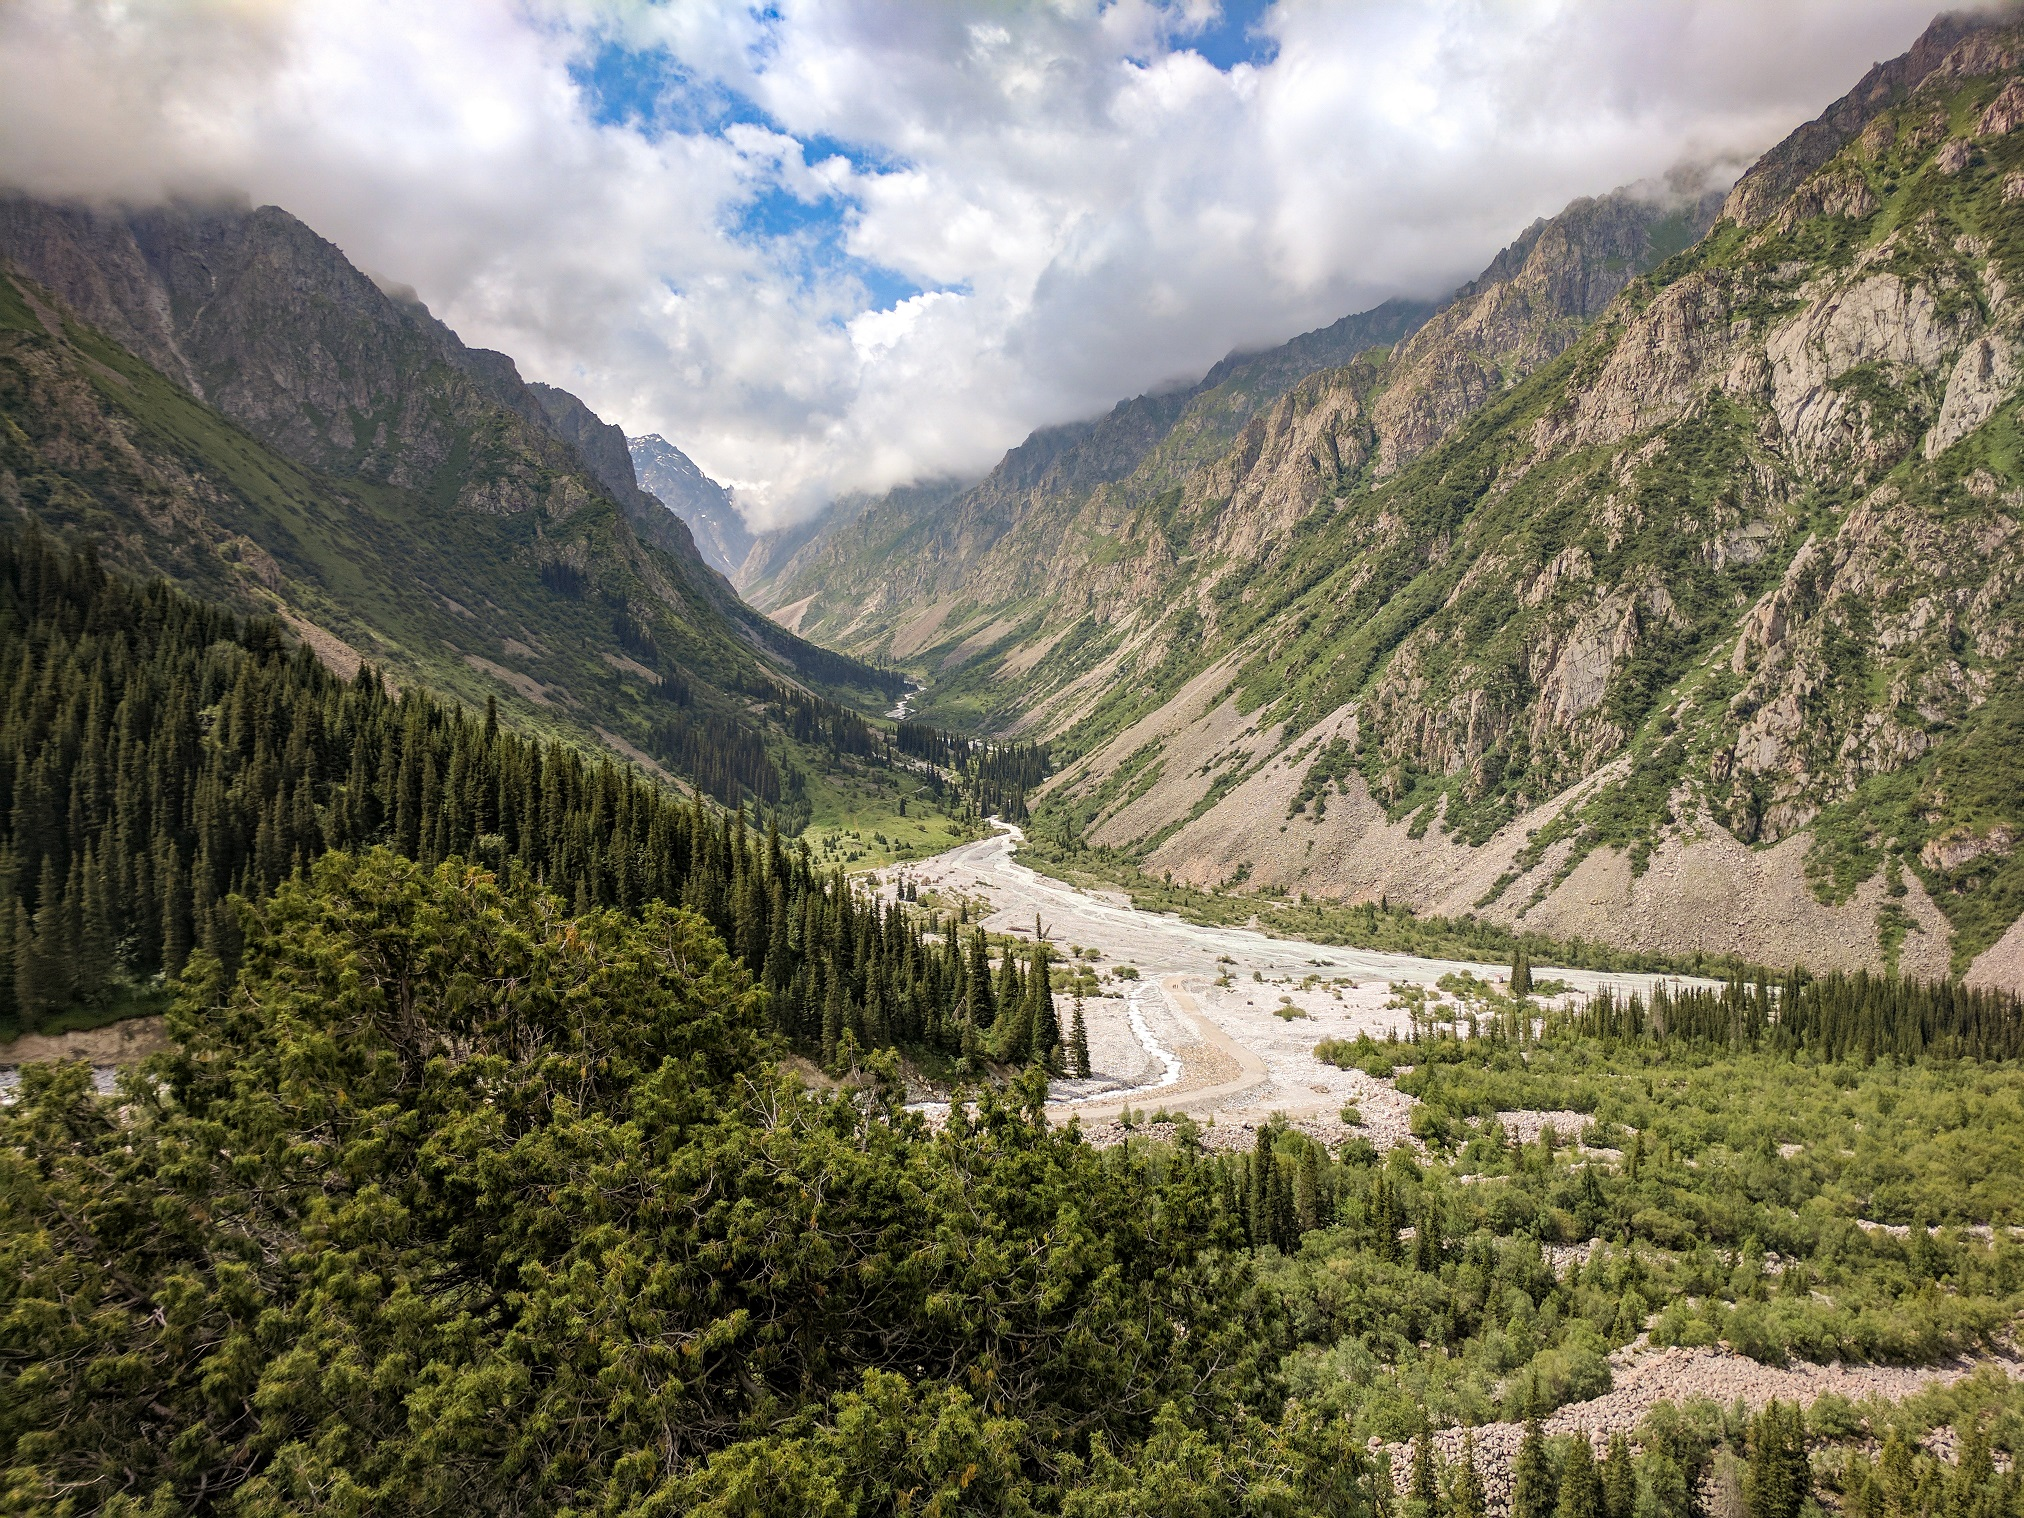 View of Ala Archa National Park, Kyrgyzstan